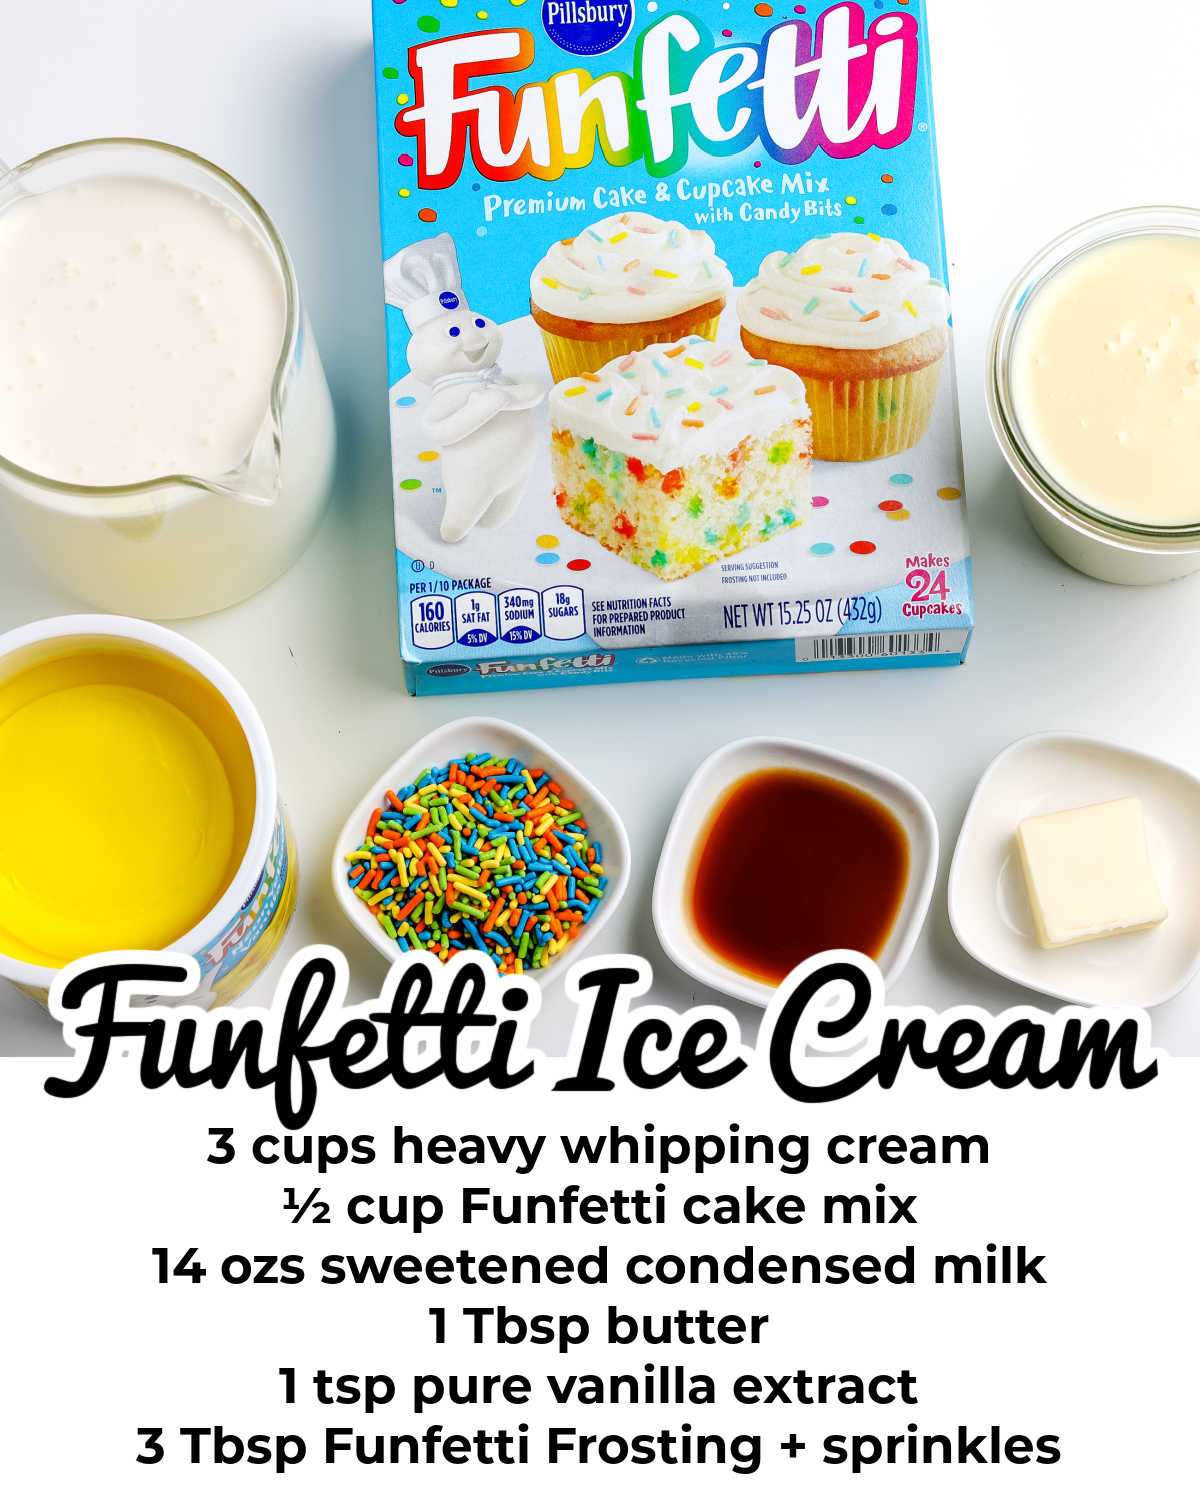 All of the ingredients needed to make this Funfetti ice cream recipe.